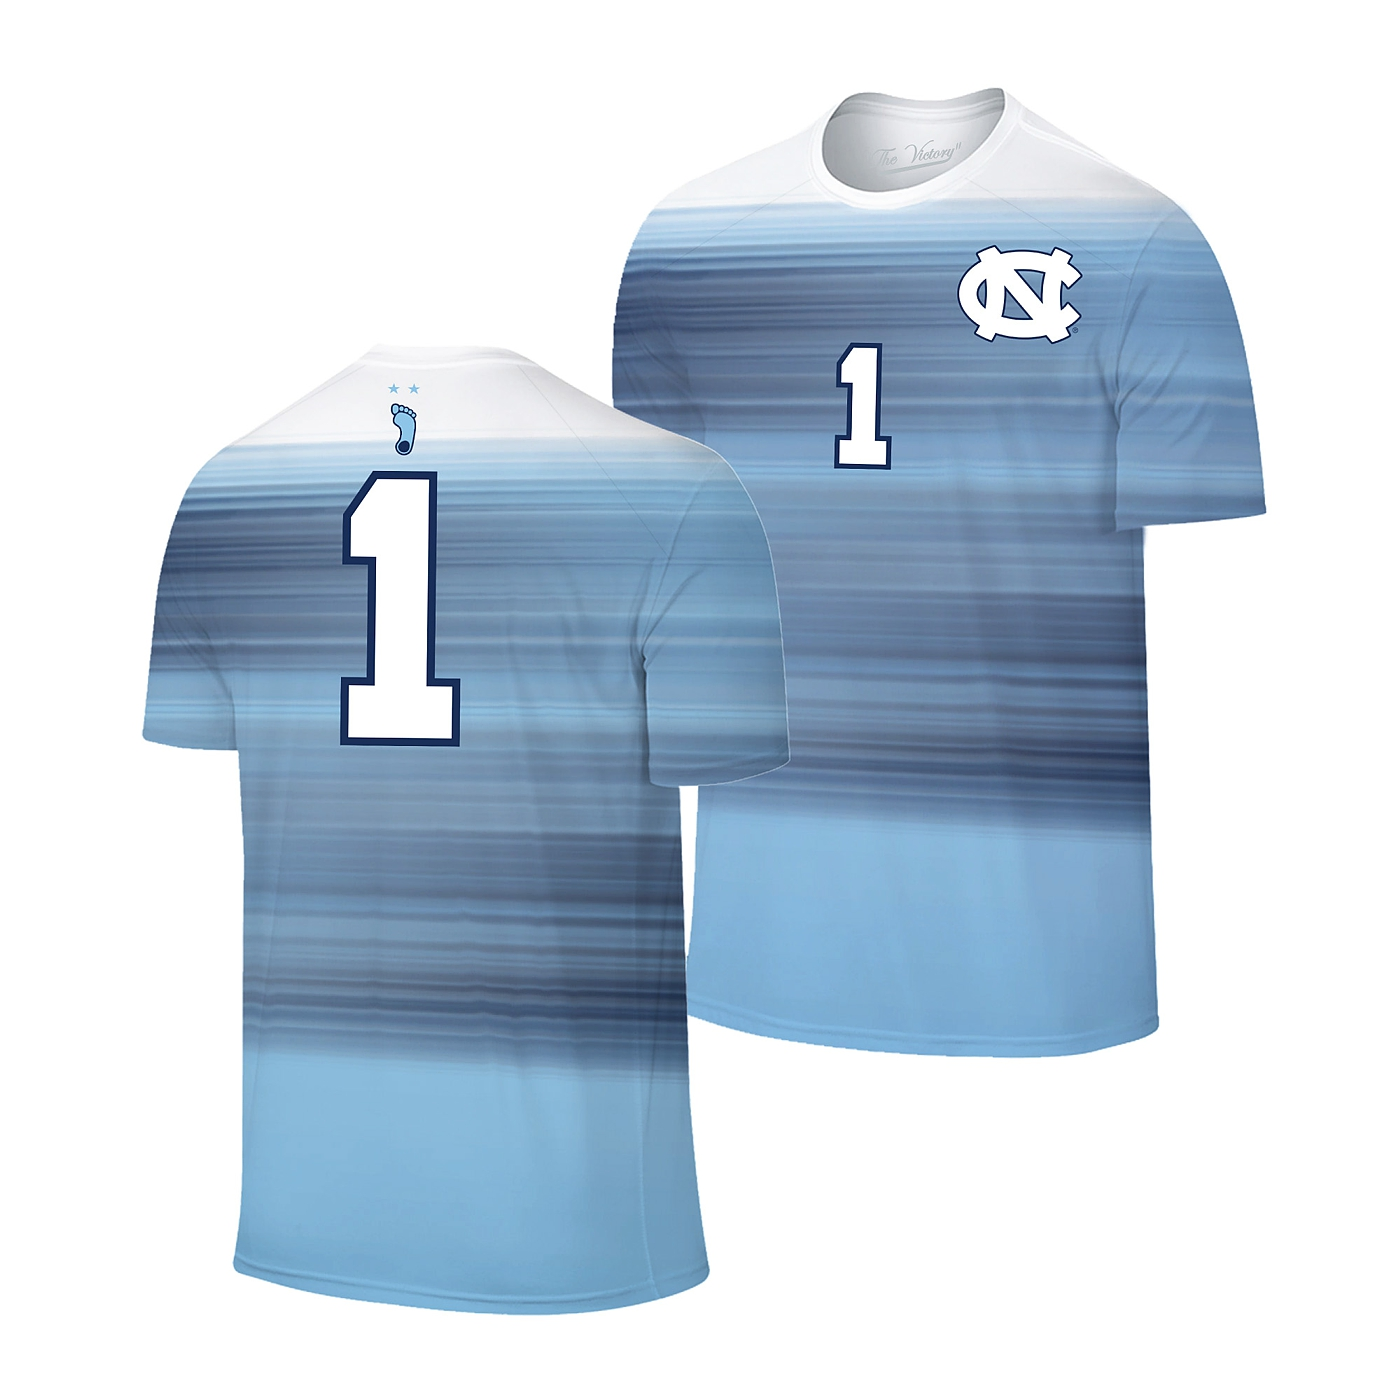 huge selection of 63204 fe119 Youth Replica #1 Men's Soccer Jersey (CB) by Original Retro Brand